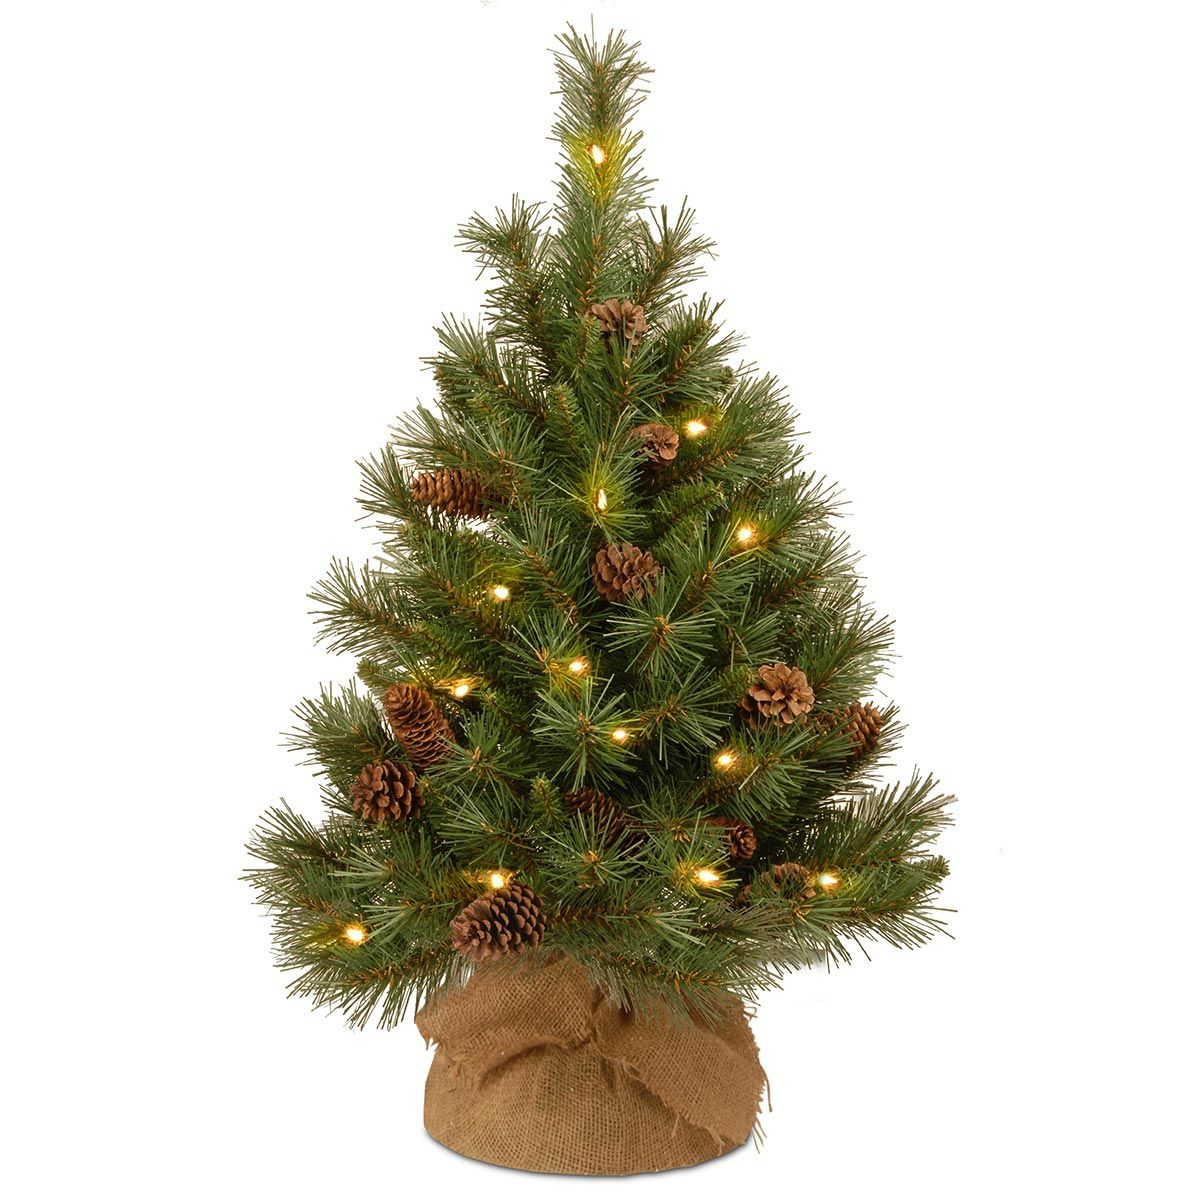 High Quality 3ft Pre Lit Battery Operated Pine Cone Burlap Artificial Christmas Tree